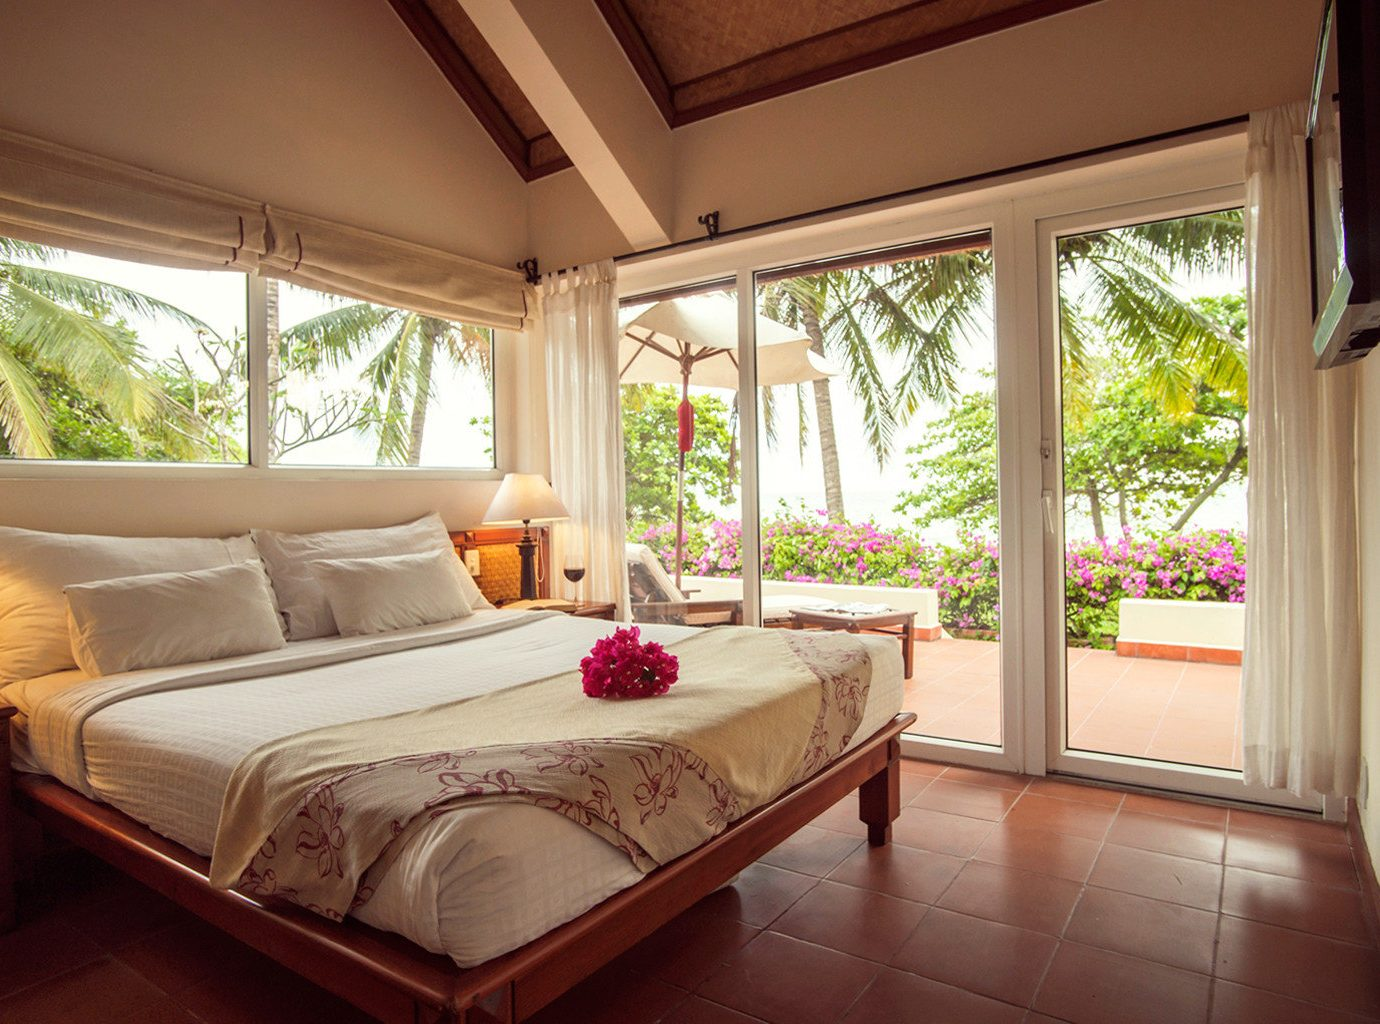 Bedroom Garden Jungle Ocean Resort Scenic views Spa Suite Terrace Tropical Waterfront property house home Villa living room cottage mansion